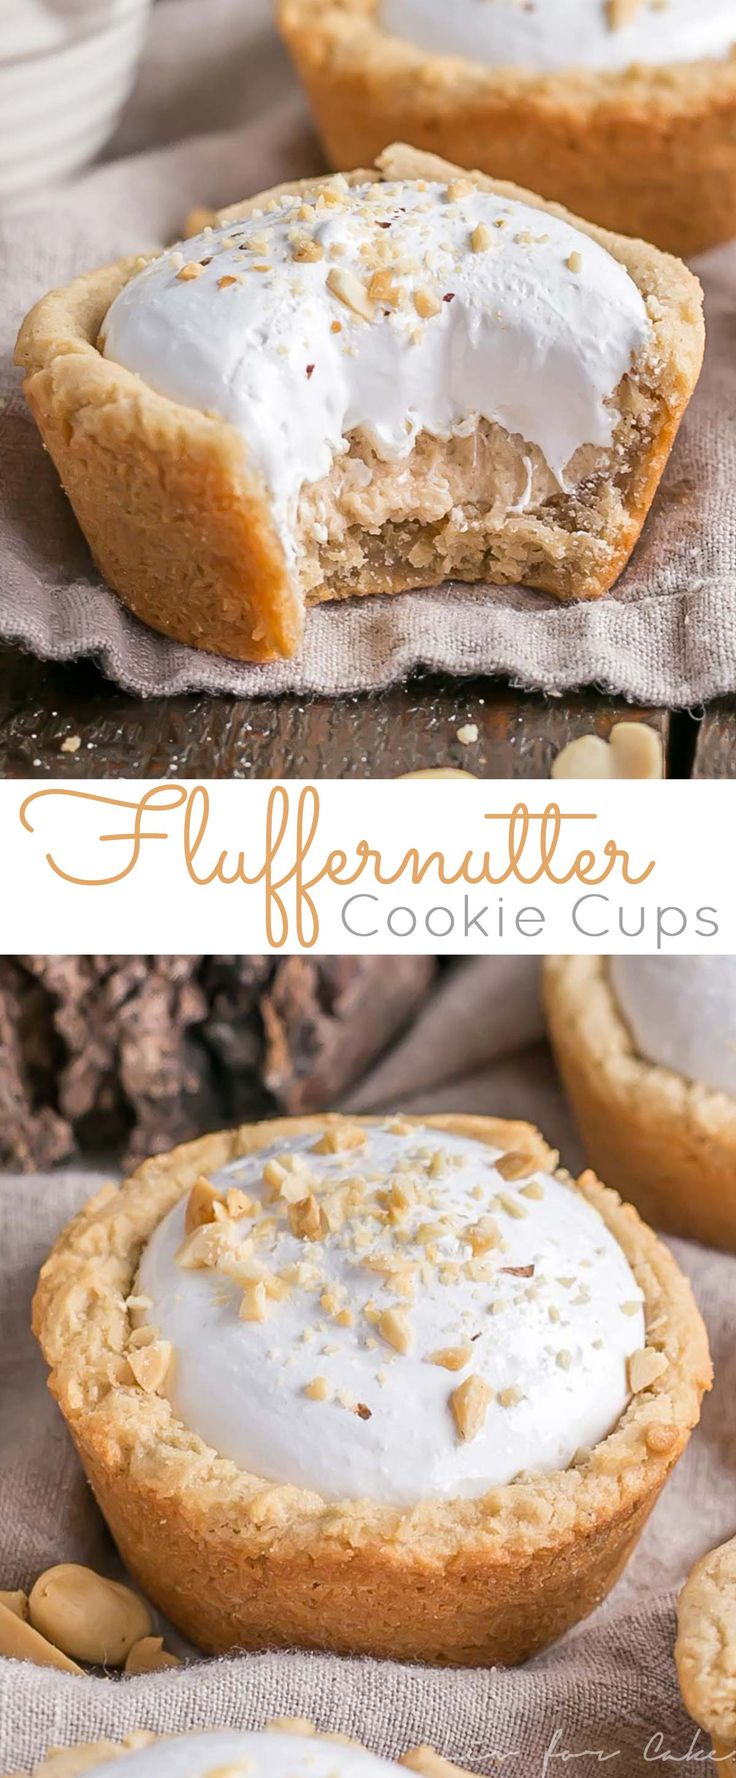 The classic peanut butter and marshmallow fluff sandwich gets a major makeover into these delicious Fluffernutter Cookie Cups! | livforcake.com via @livforcake